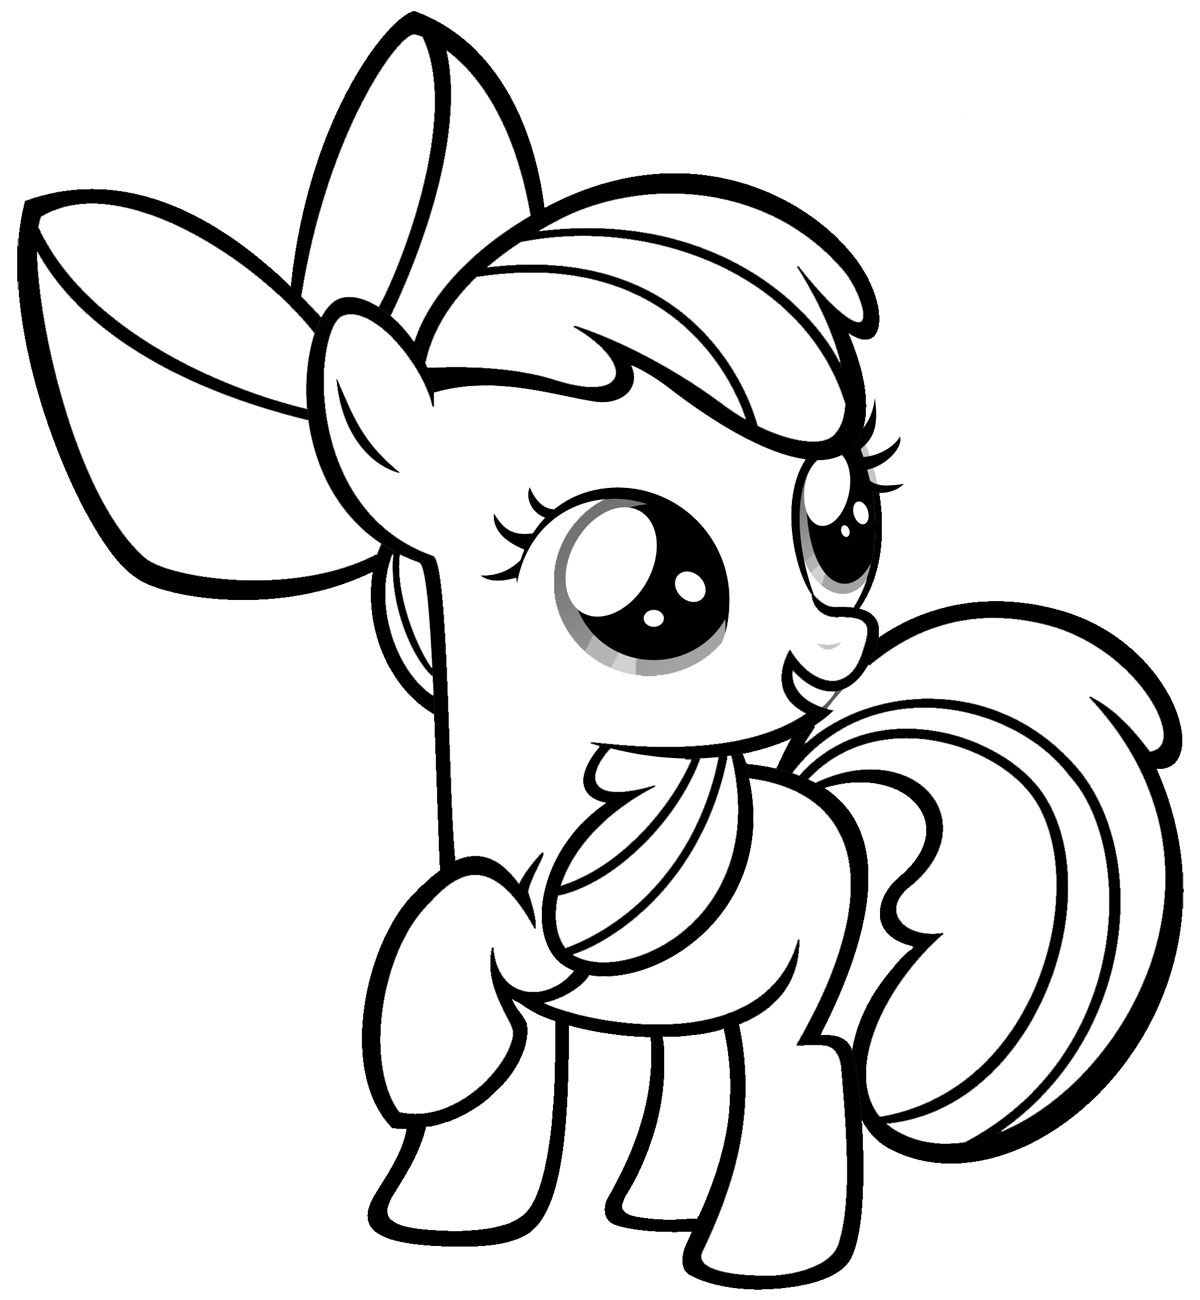 baby my little pony games miifotos LR44 Battery my little pony baby little pony games 1200x1300 baby my little pony games